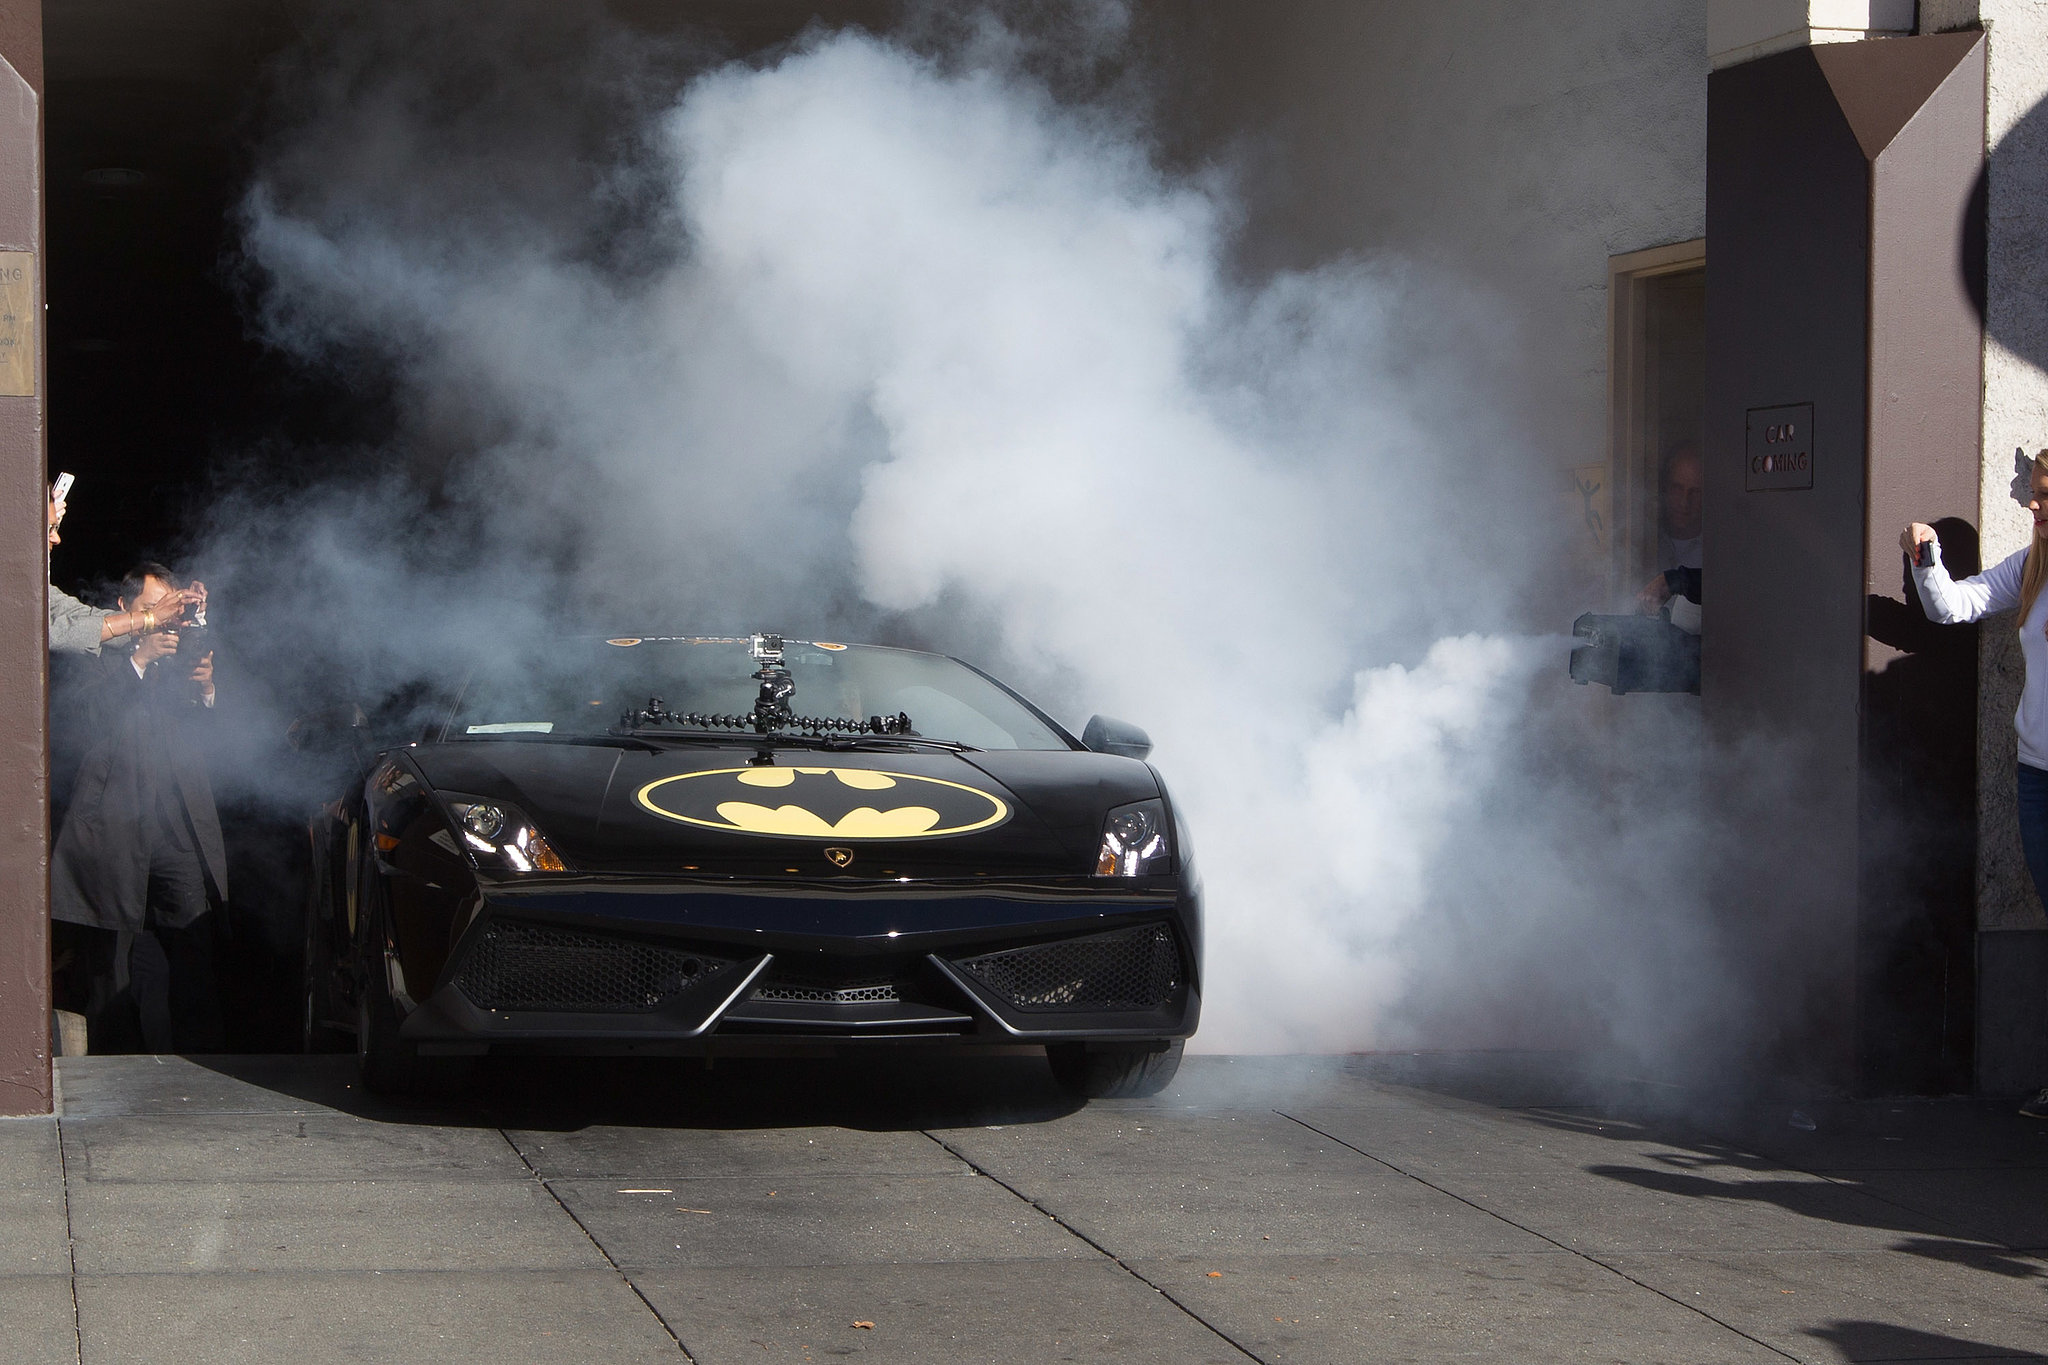 Batkid started his day